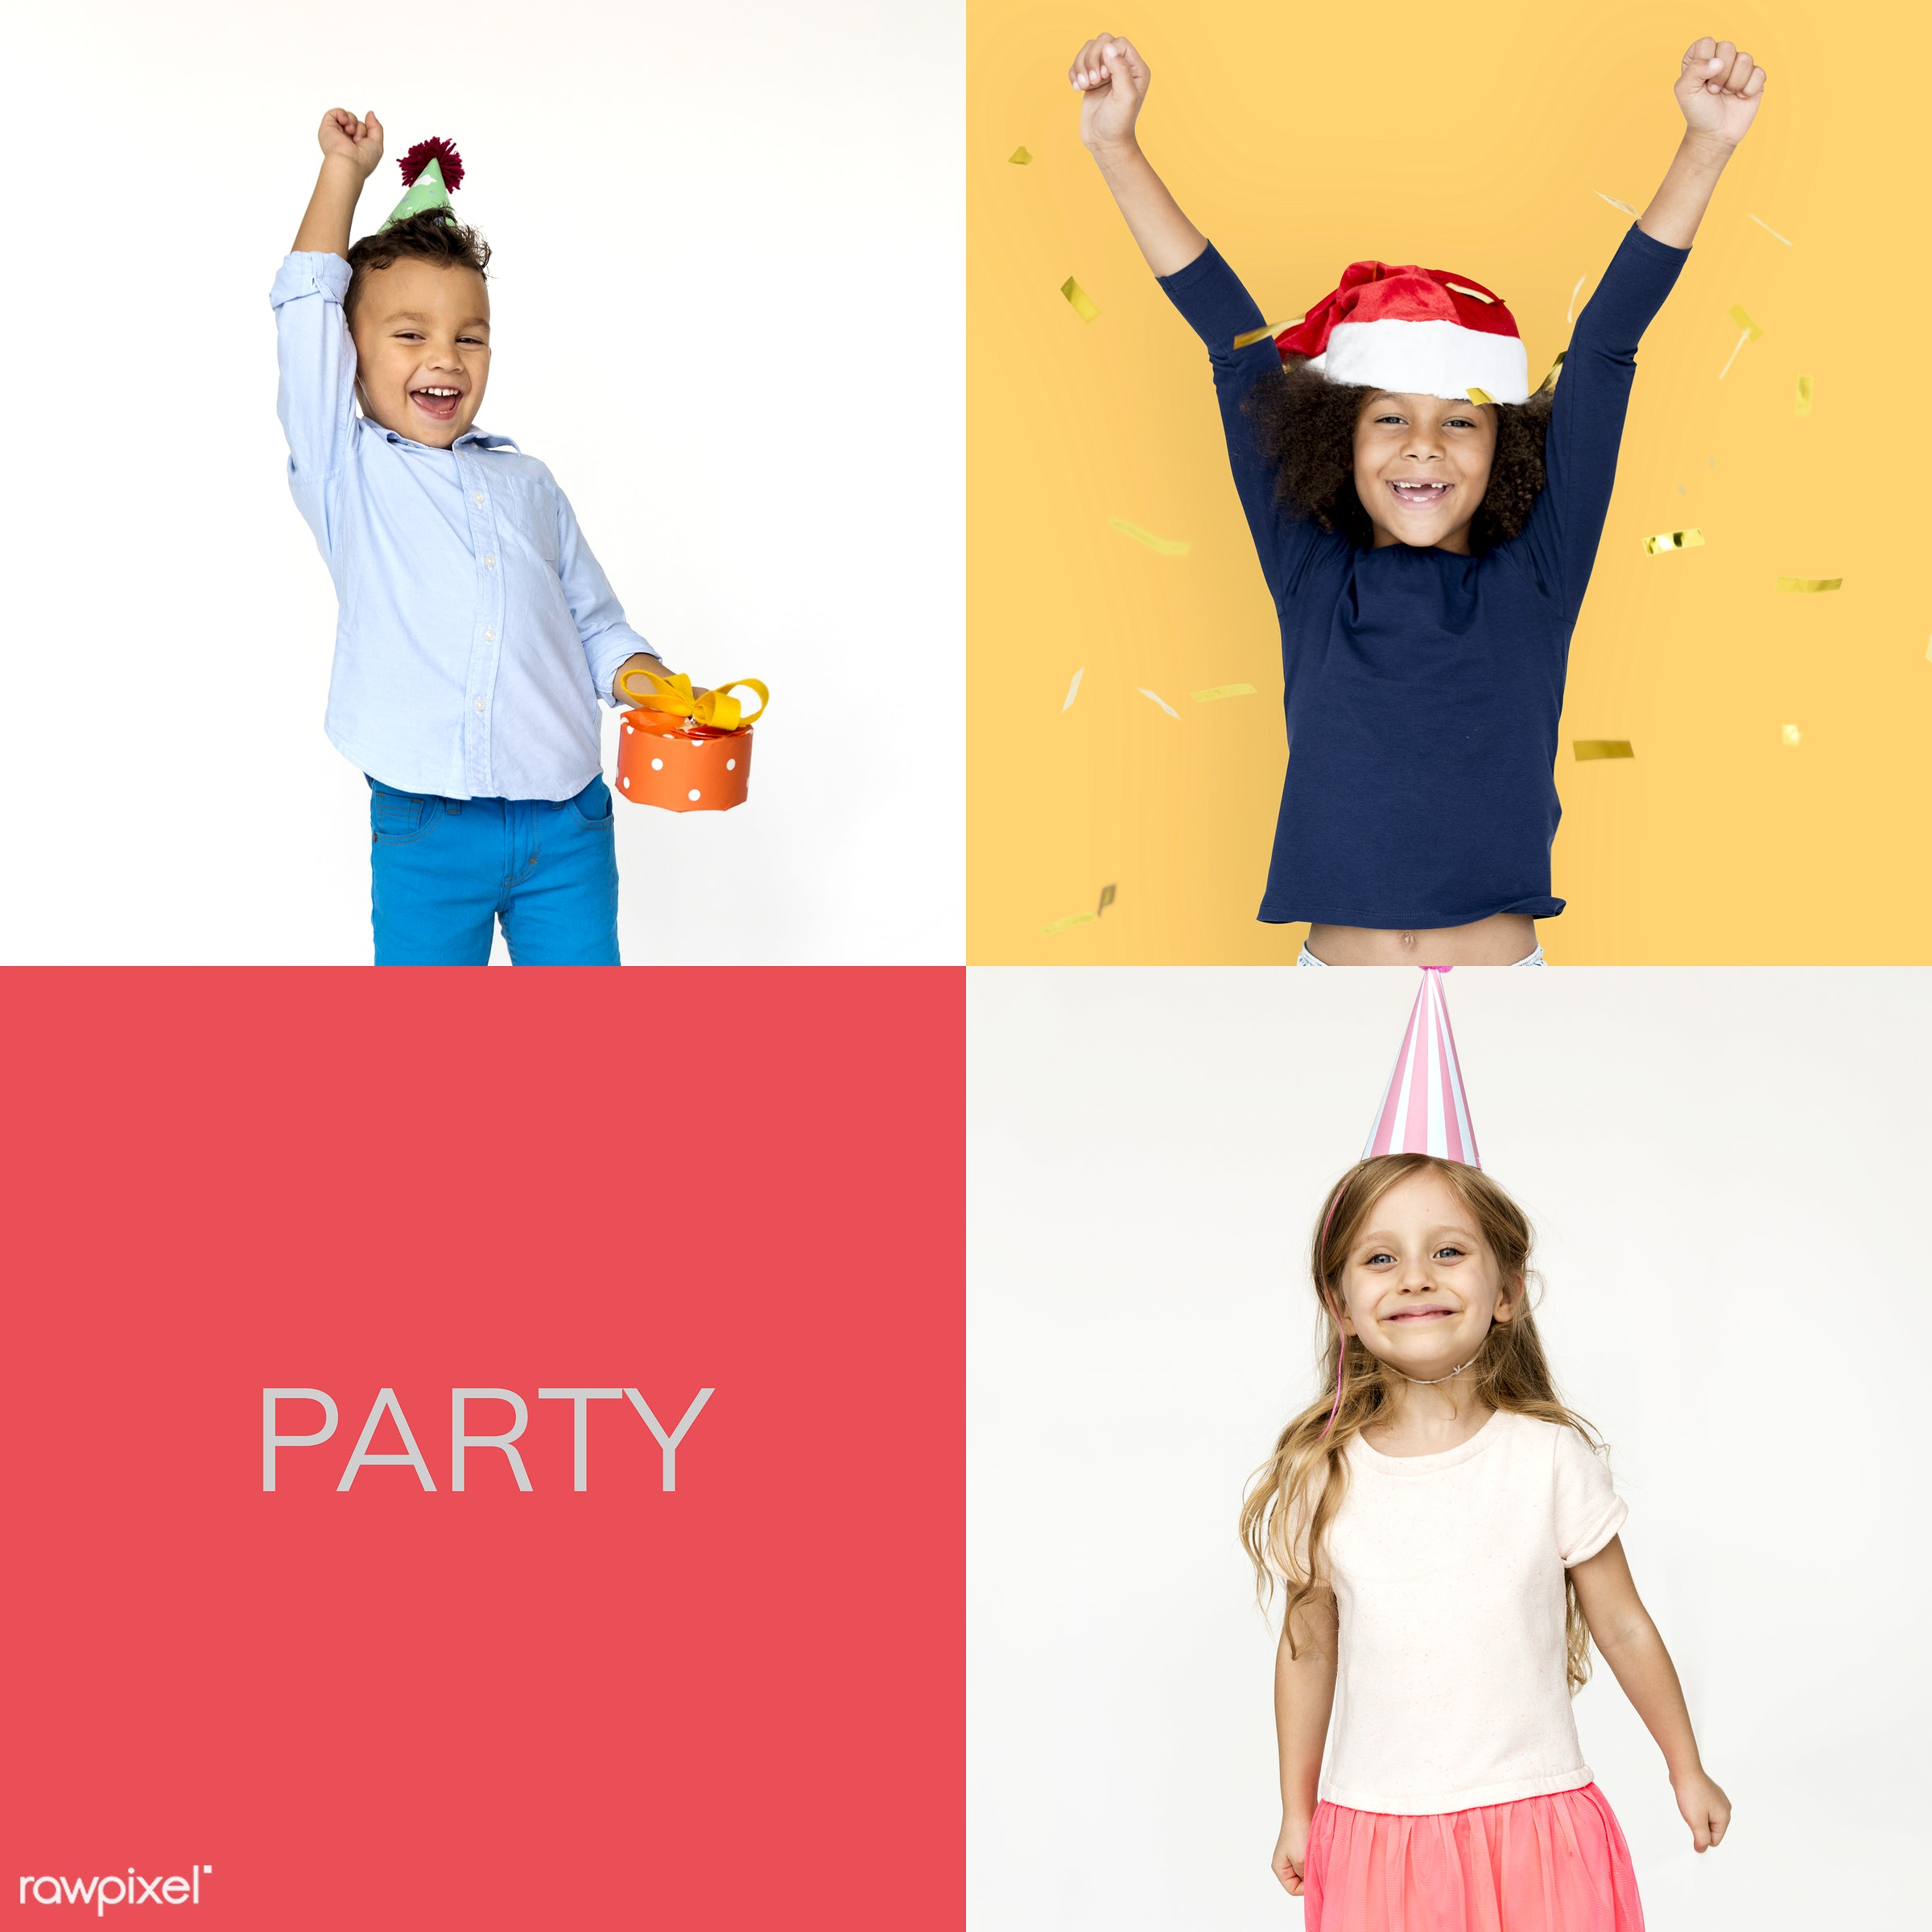 Set of portraits of kids - studio, relax, party, positivity, lifestyle, positive, smiling, schoolgirl, isolated, little girl...